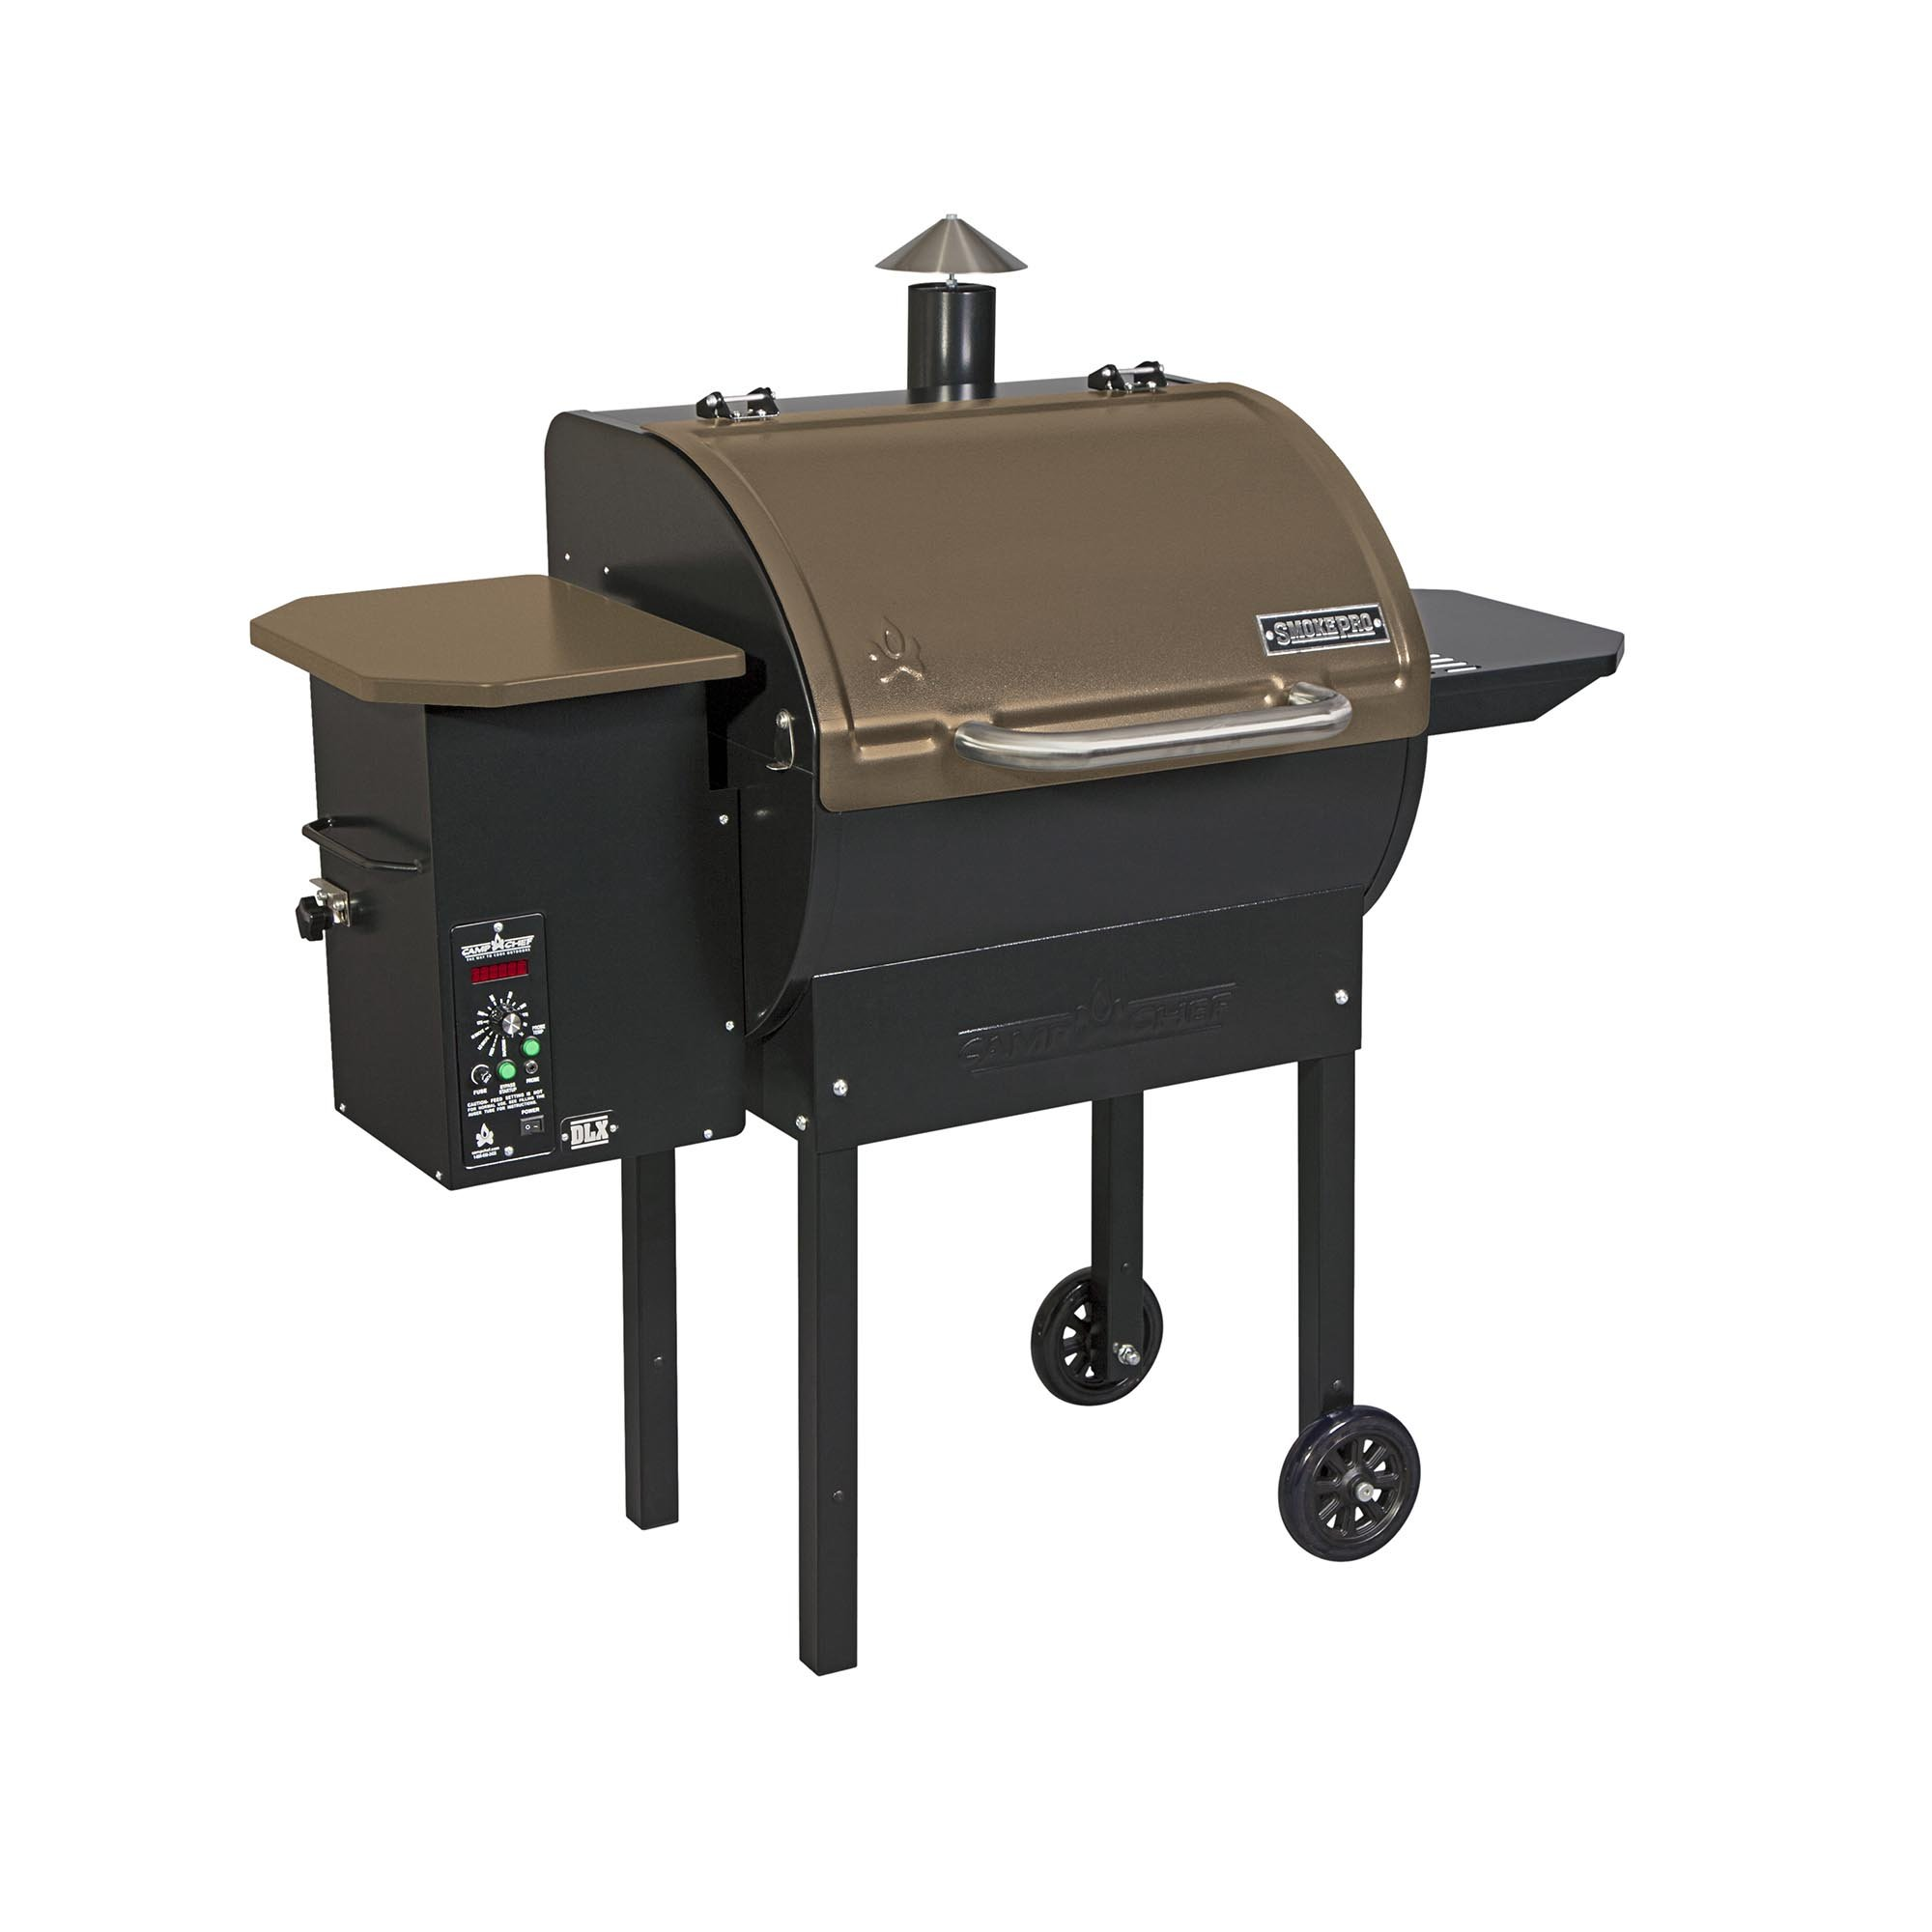 Camp Chef SmokePro DLX Pellet Grill - Bronze by Camp Chef